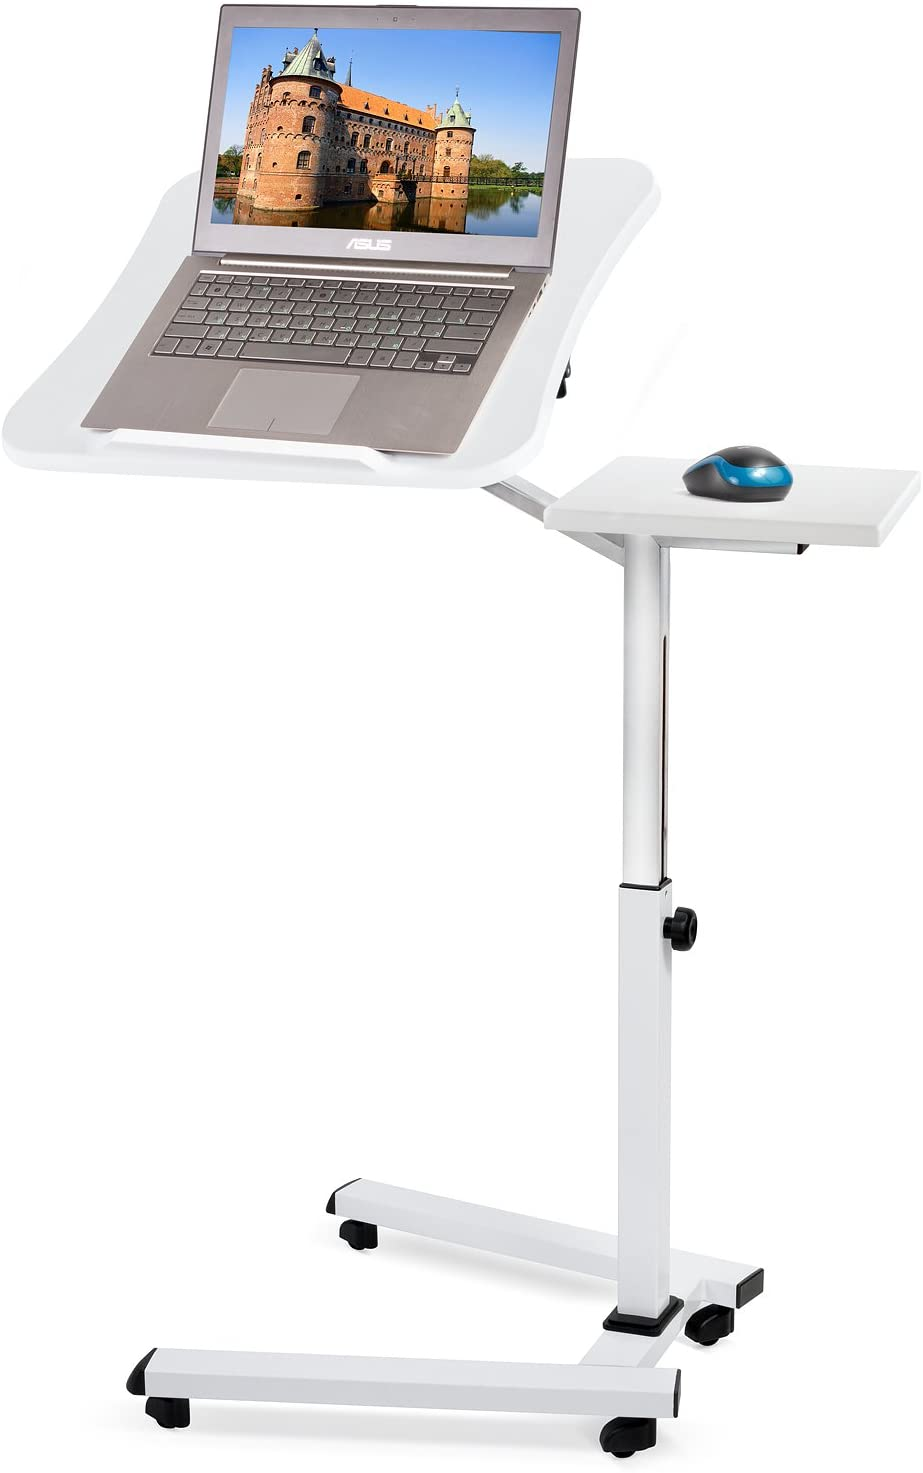 Tatkraft Like Portable Laptop Desk with Mouse Pad